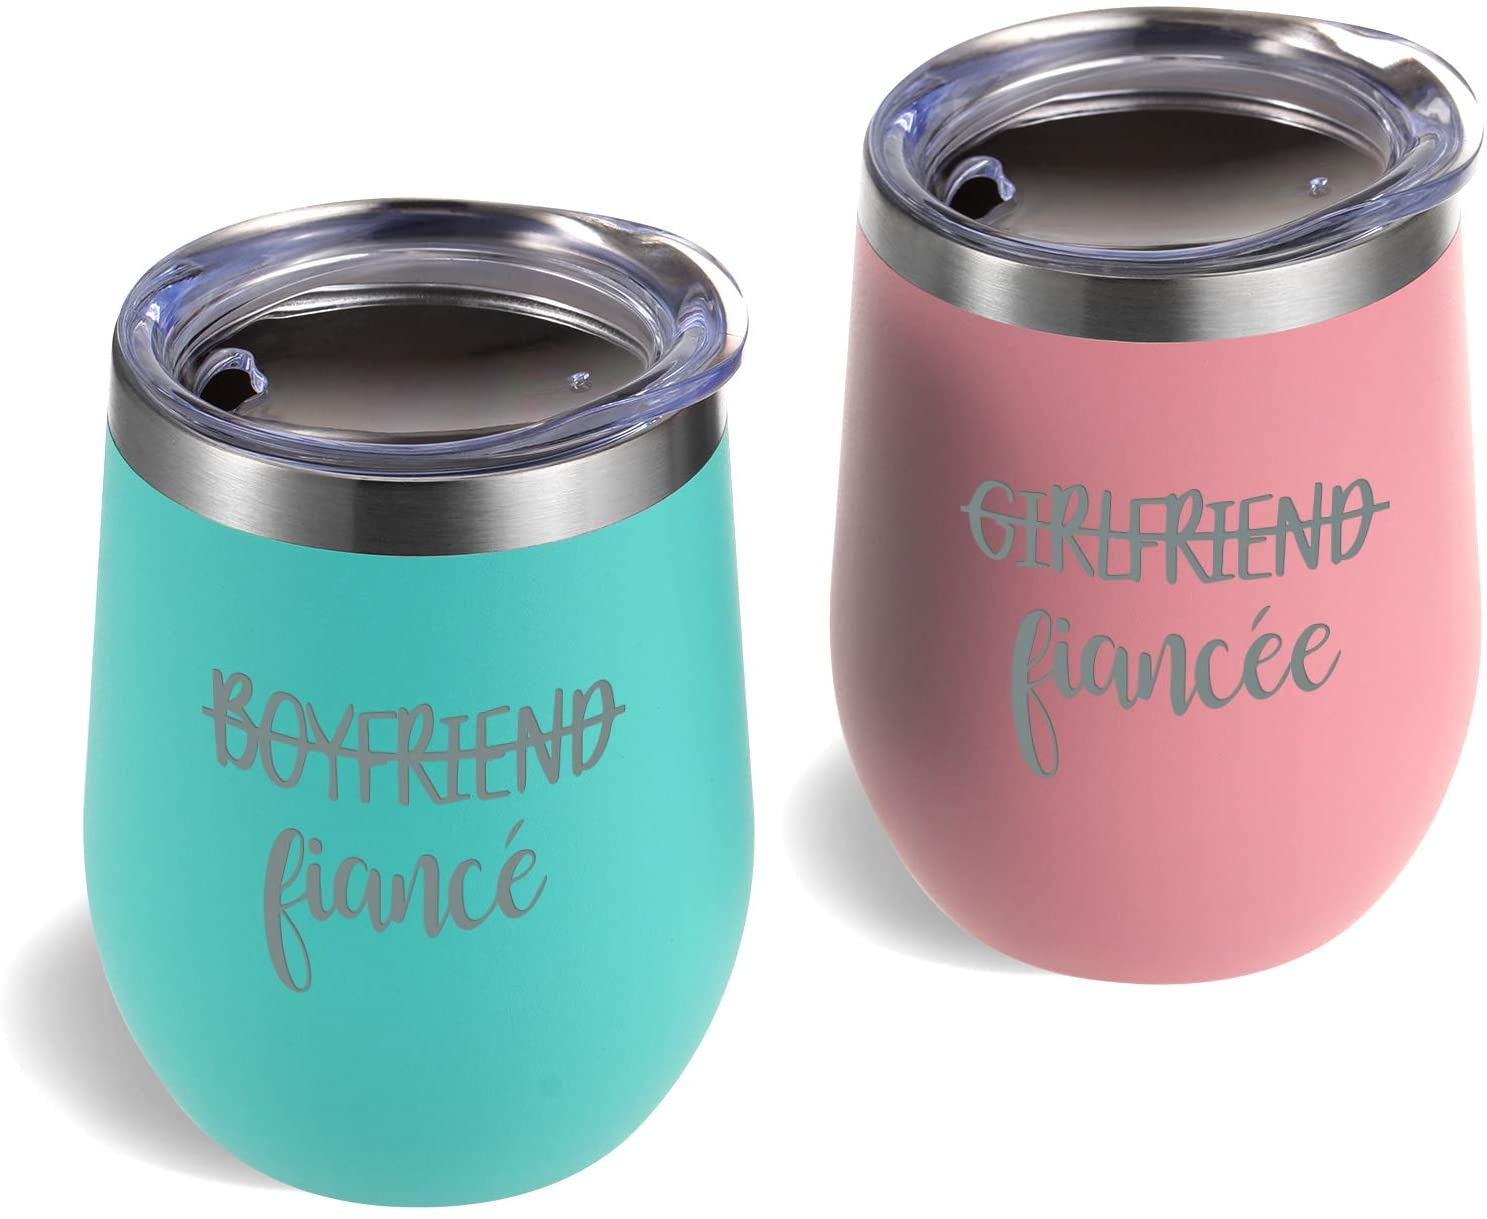 ZTA Fiance Fiancee Wine Tumbler Set, Engagement Ideas for Girlfriend and Boyfriend Friend, 12 Oz Funny Couple Stainless Steel Insulated Tumbler with Lid, Blue and Pink